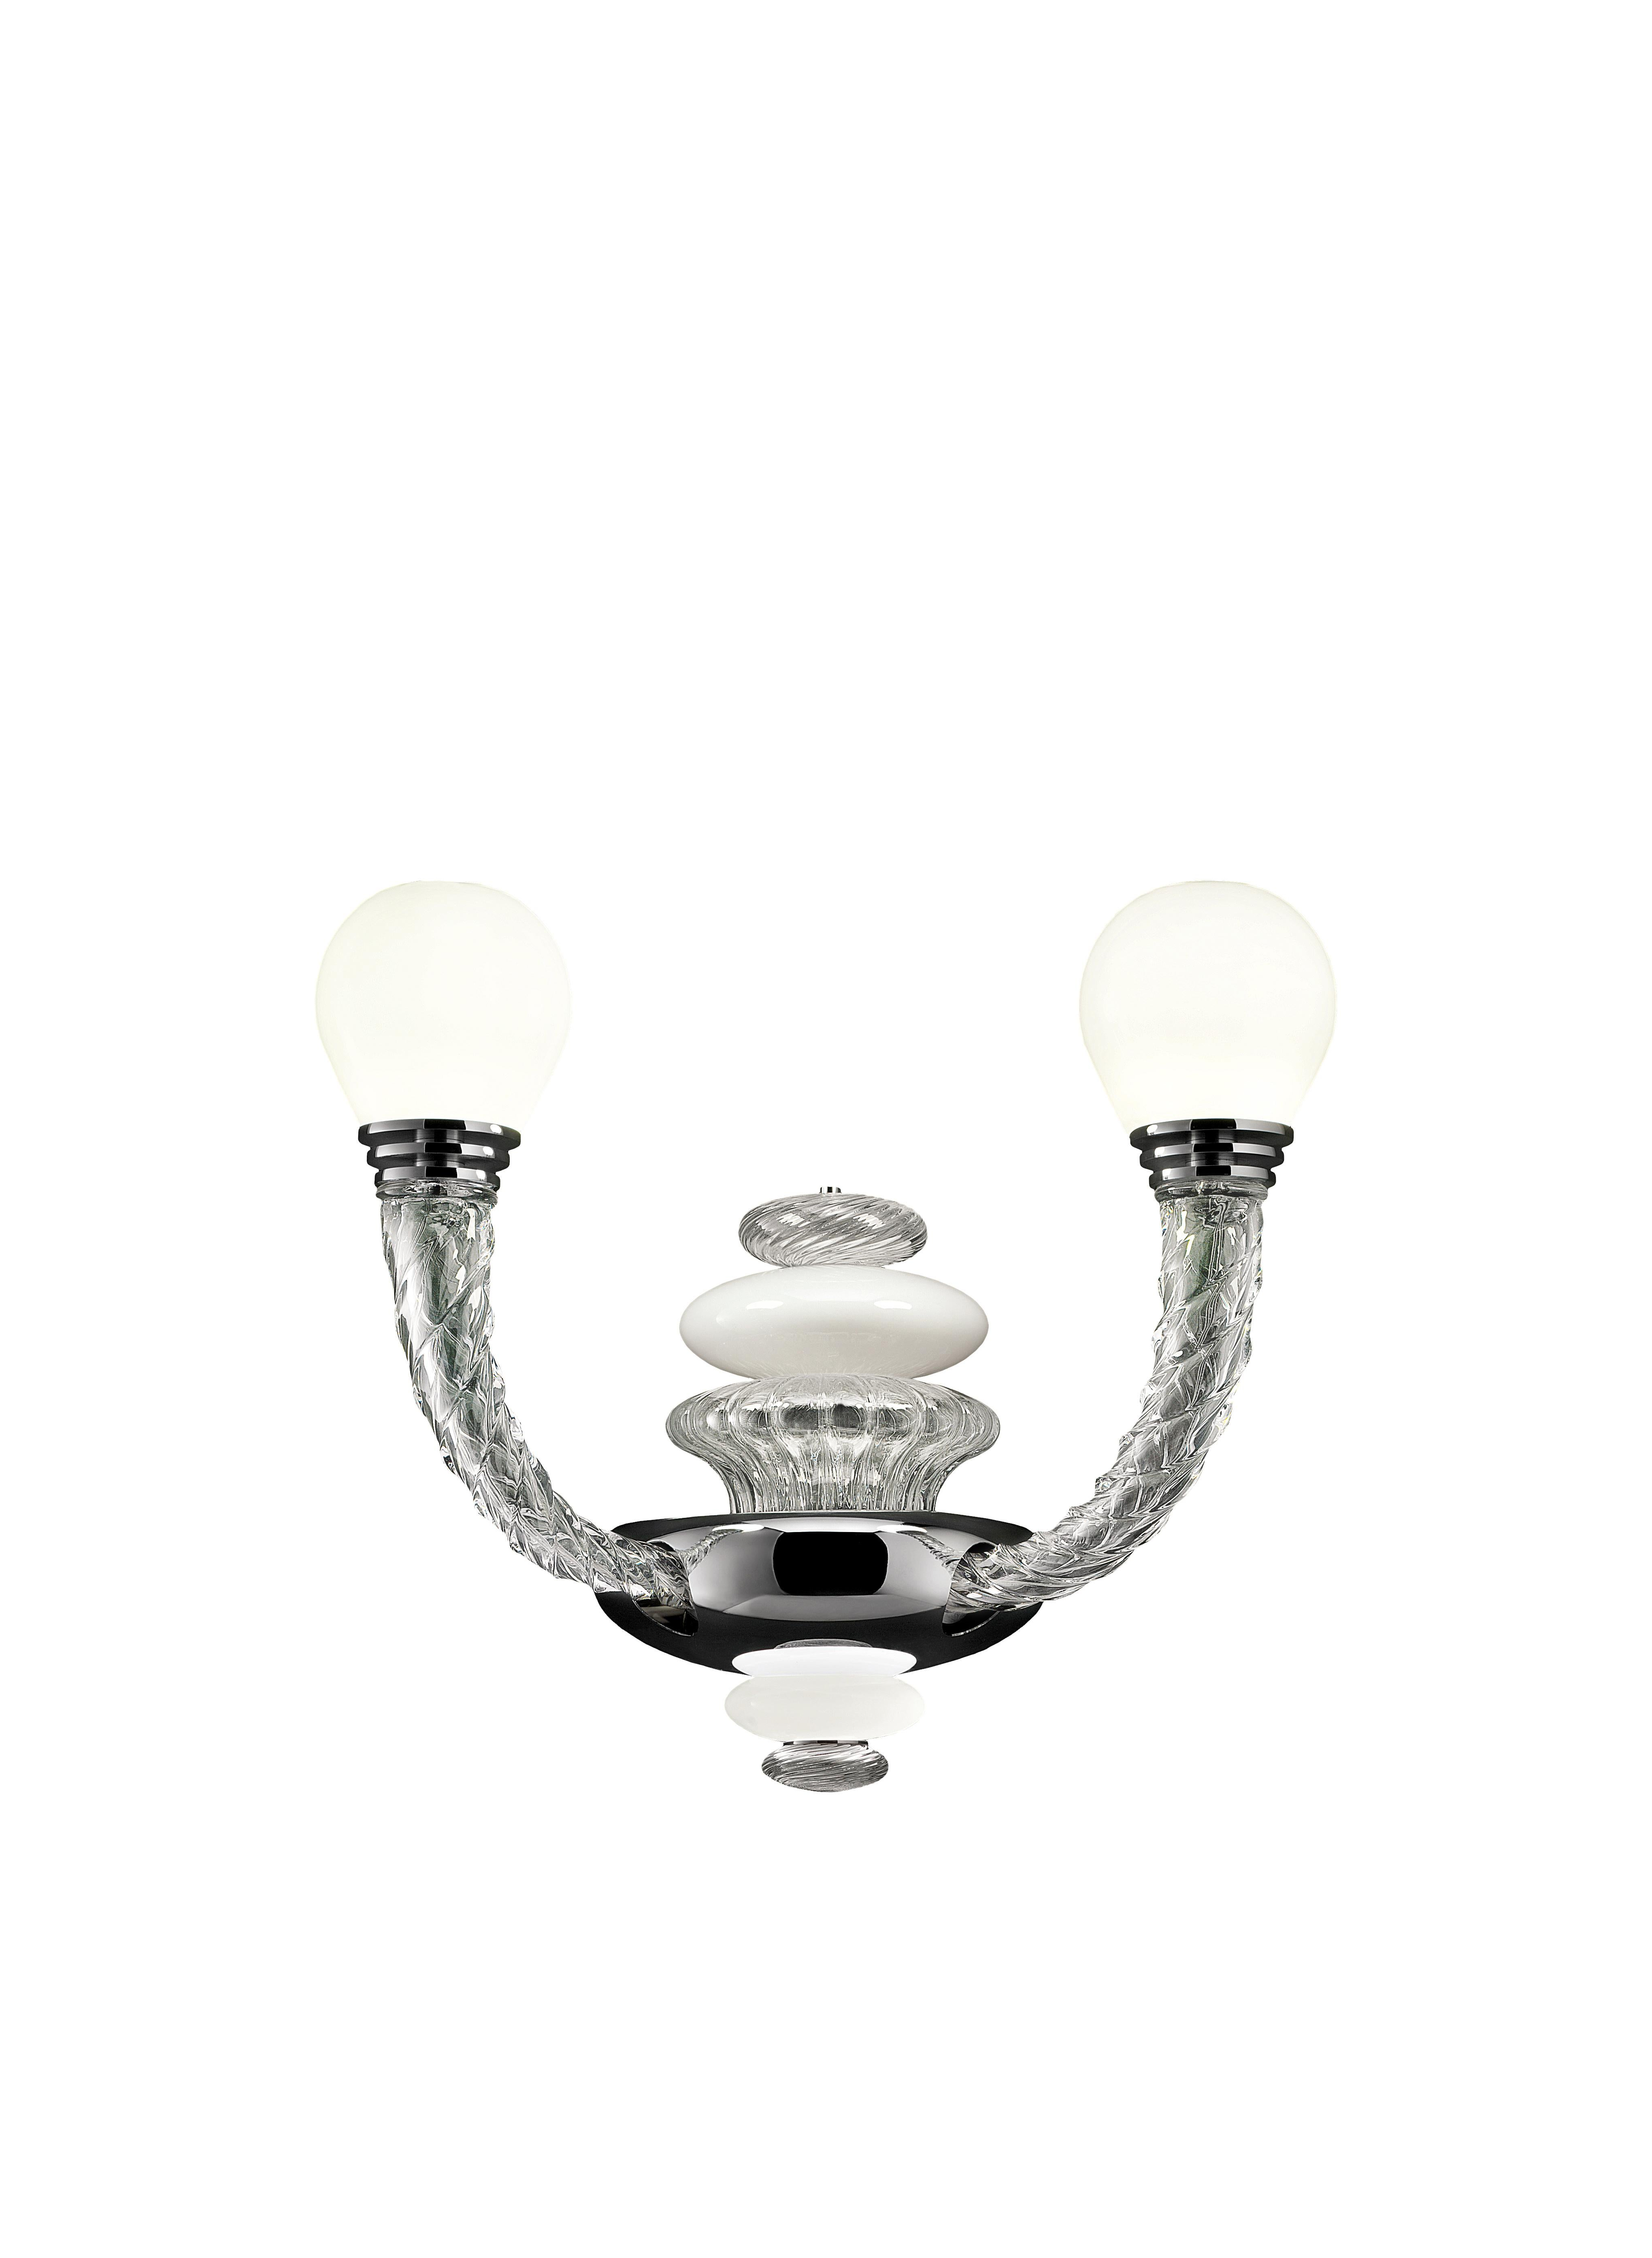 Pigalle 5680 02 Wall Sconce in White/Crystal Glass, by Barovier&Toso